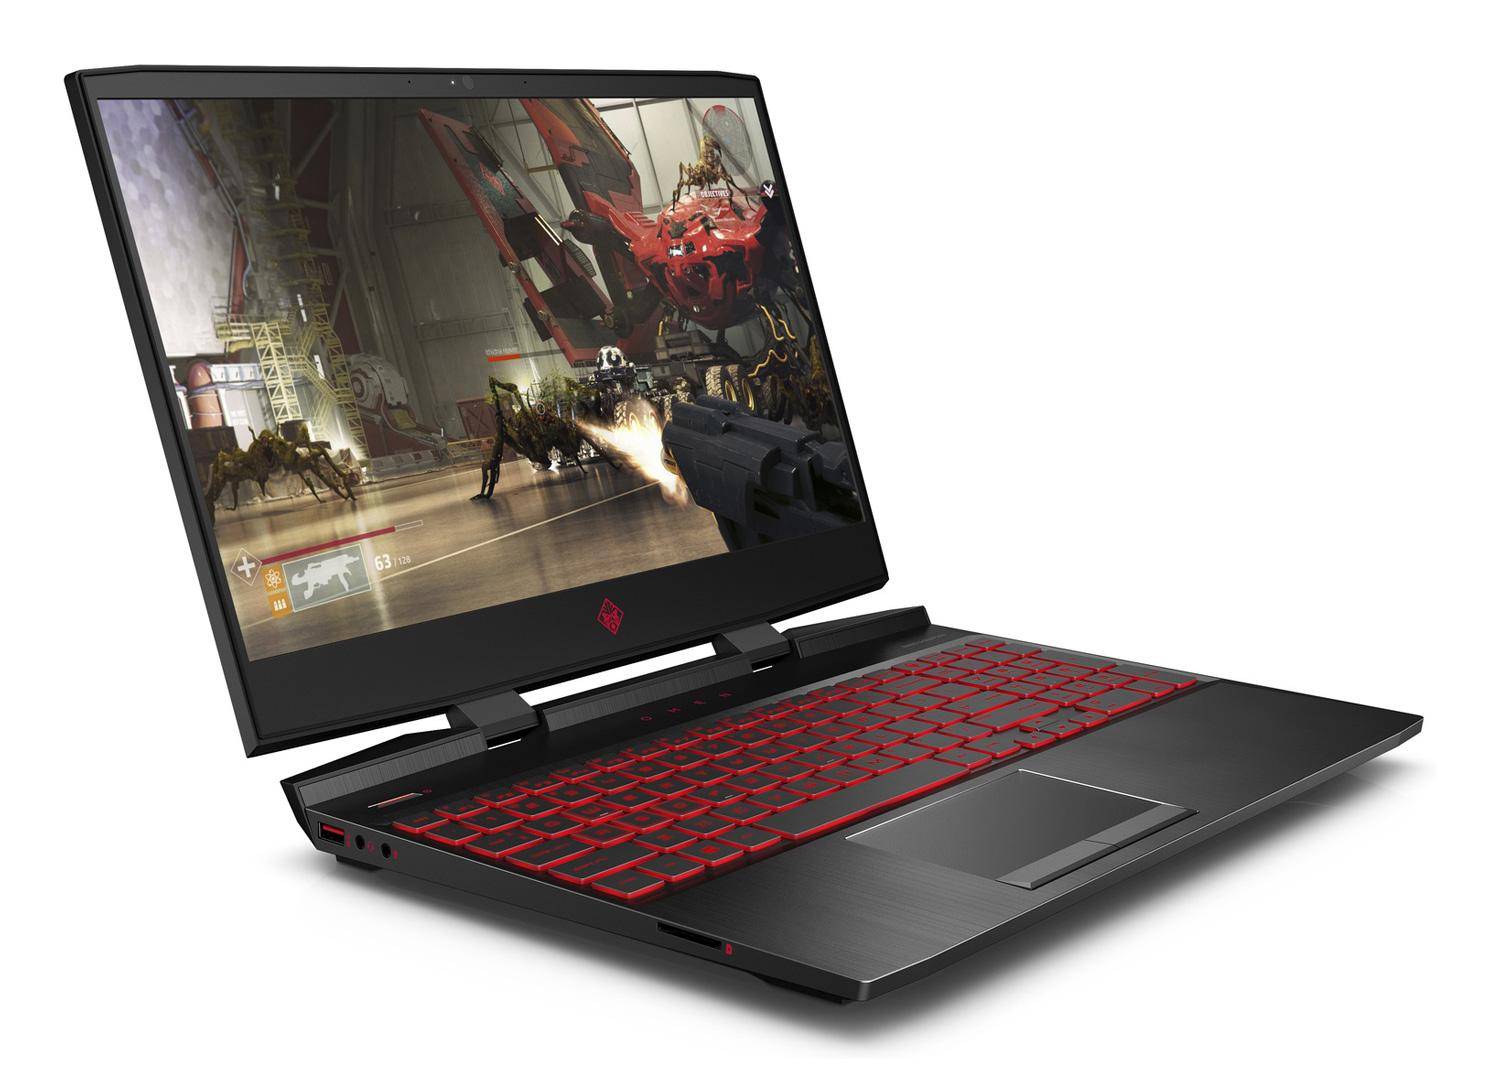 Image du PC portable HP Omen 15-dc1005nf - RTX 2070 Turing, IPS 144Hz